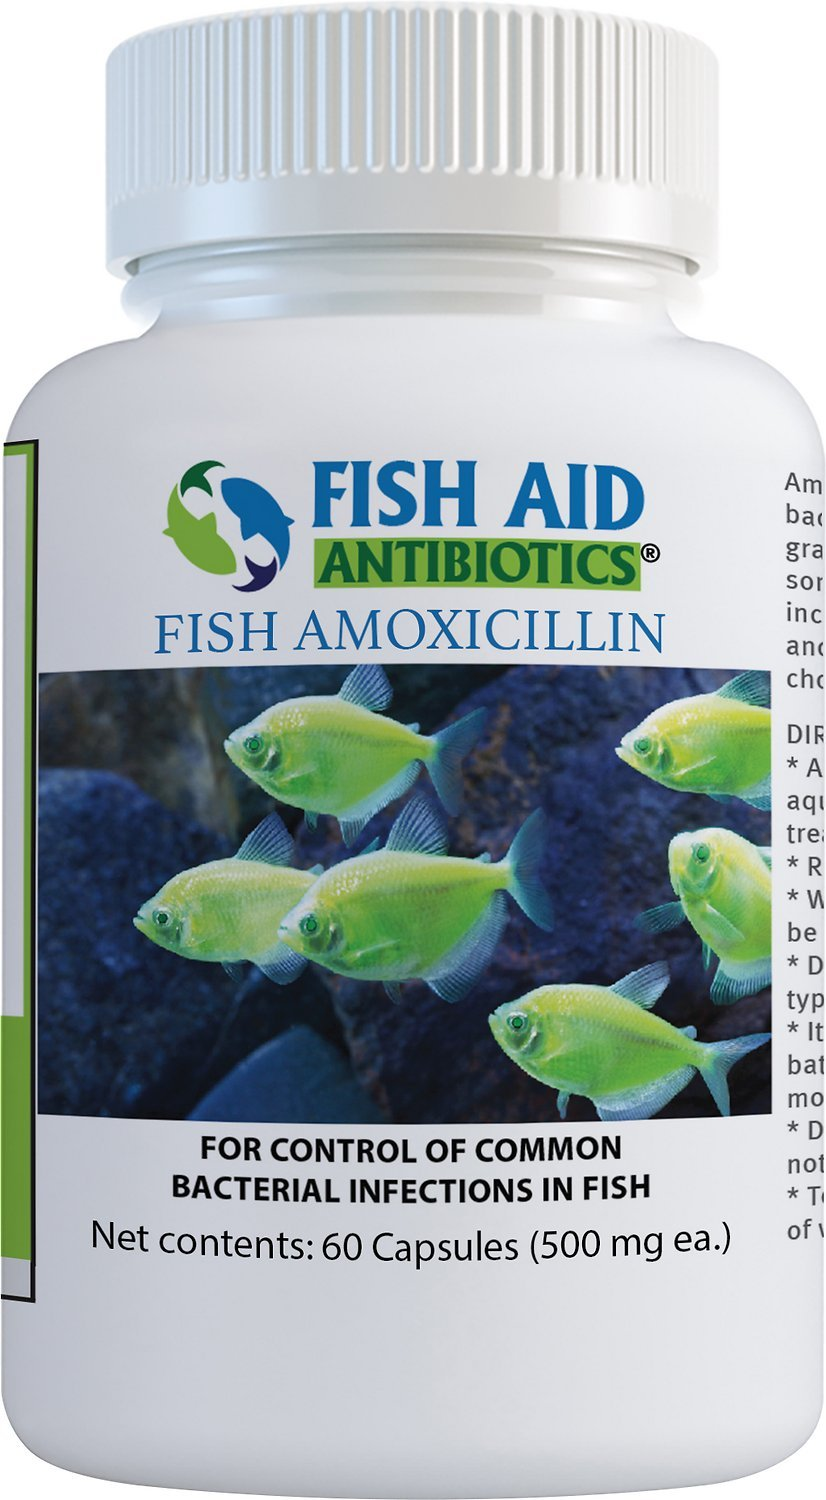 Fish Aid (500 mg 60 Count) Antibiotics Amoxicillin Capsules Fish Medication By Fish Aid Antibiotics